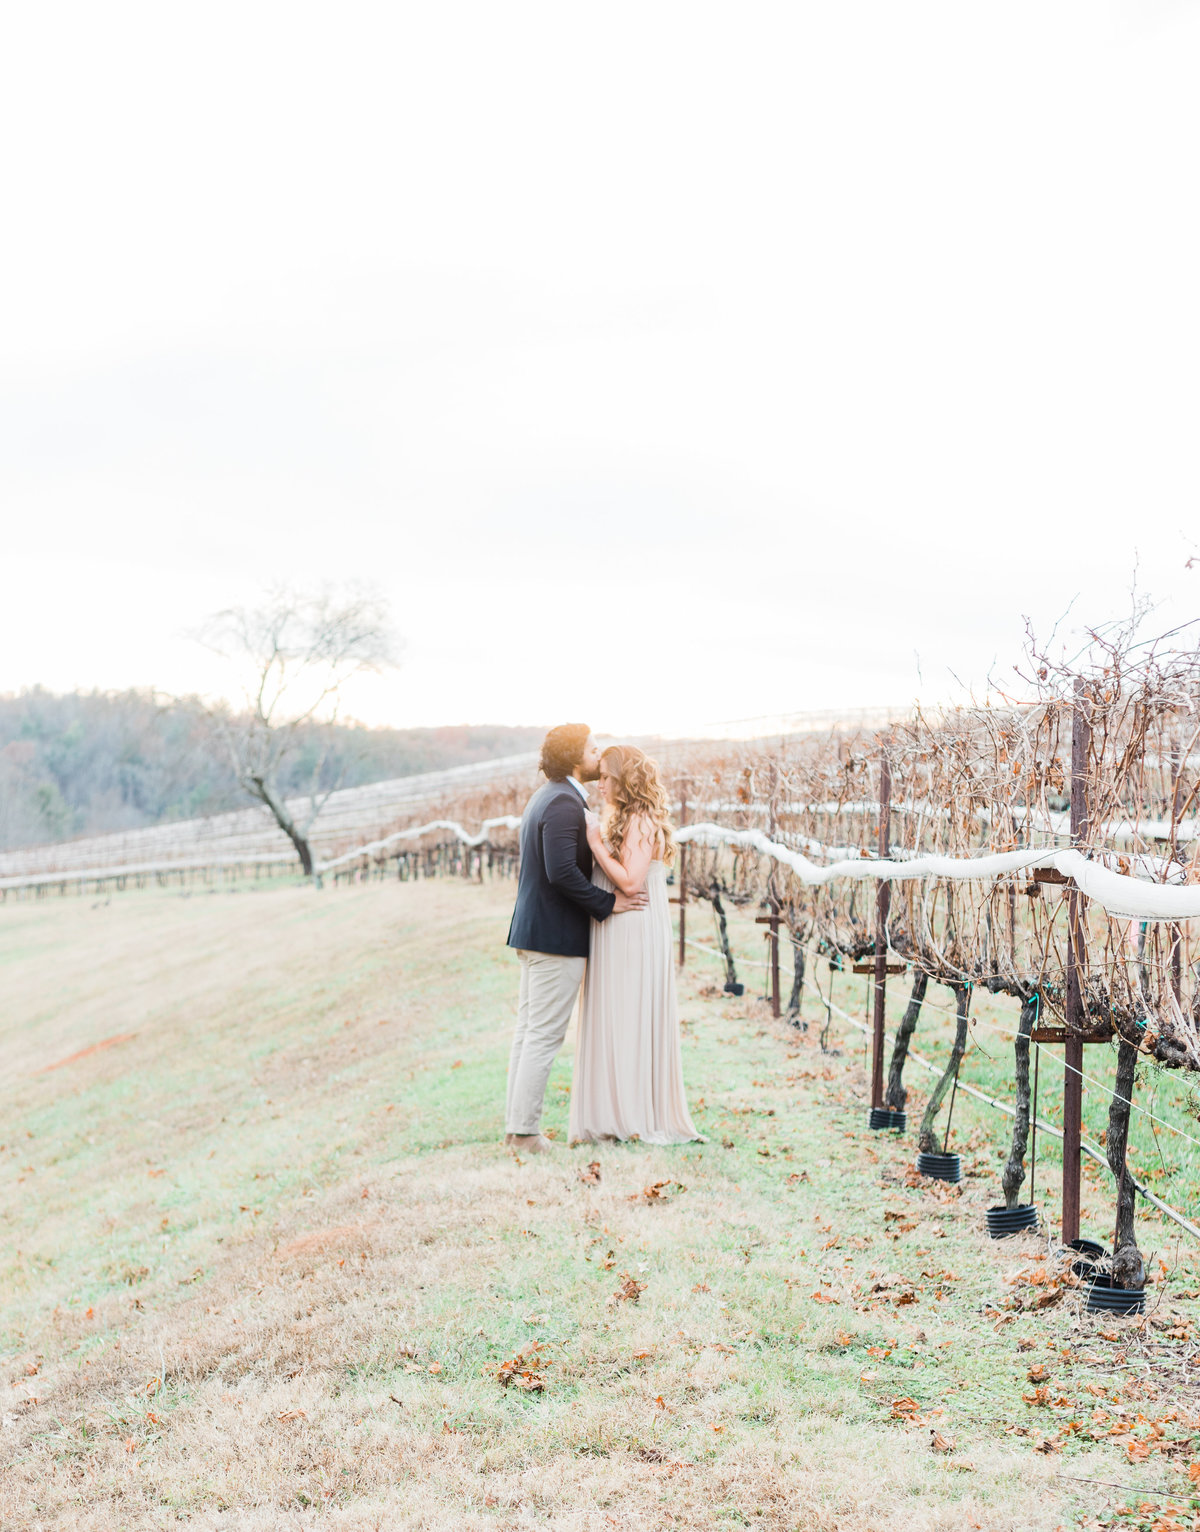 Motaluce Winery, Gainesville, GA Couple Engagement Anniversary Photography Session by Renee Jael-29